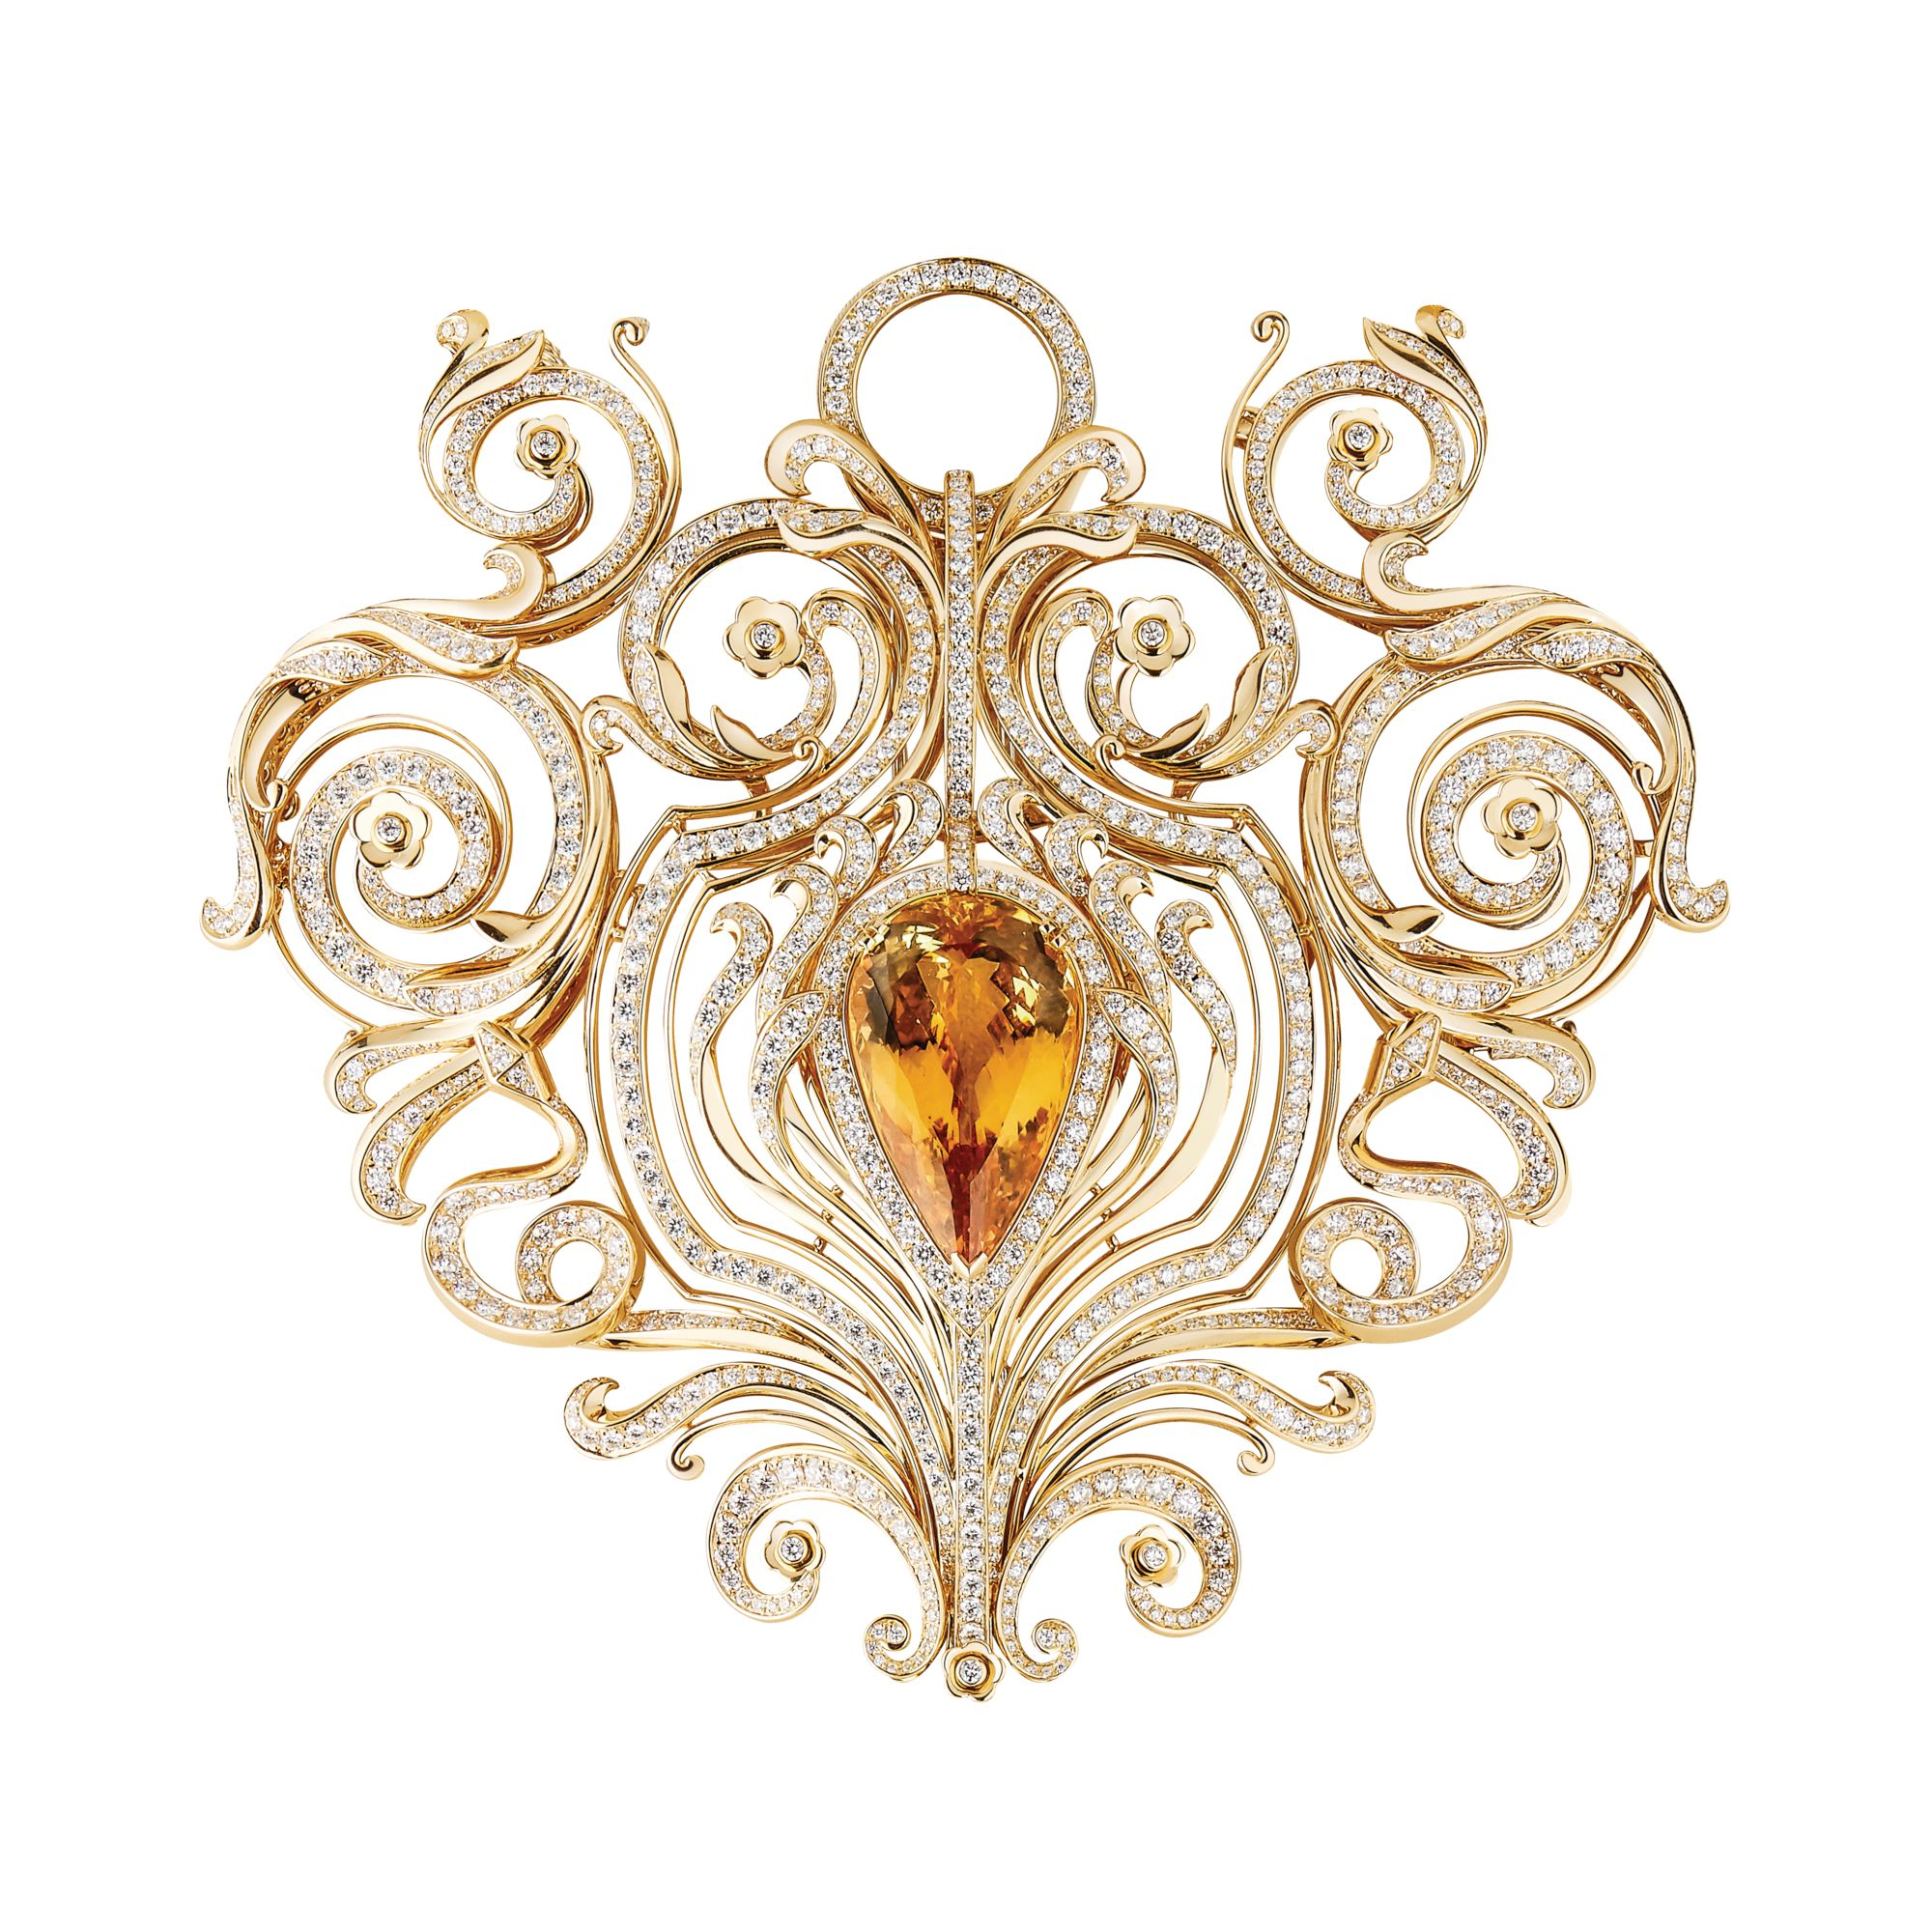 Boucheron Armoiries necklace in yellow gold set with an imperial topaz and diamonds